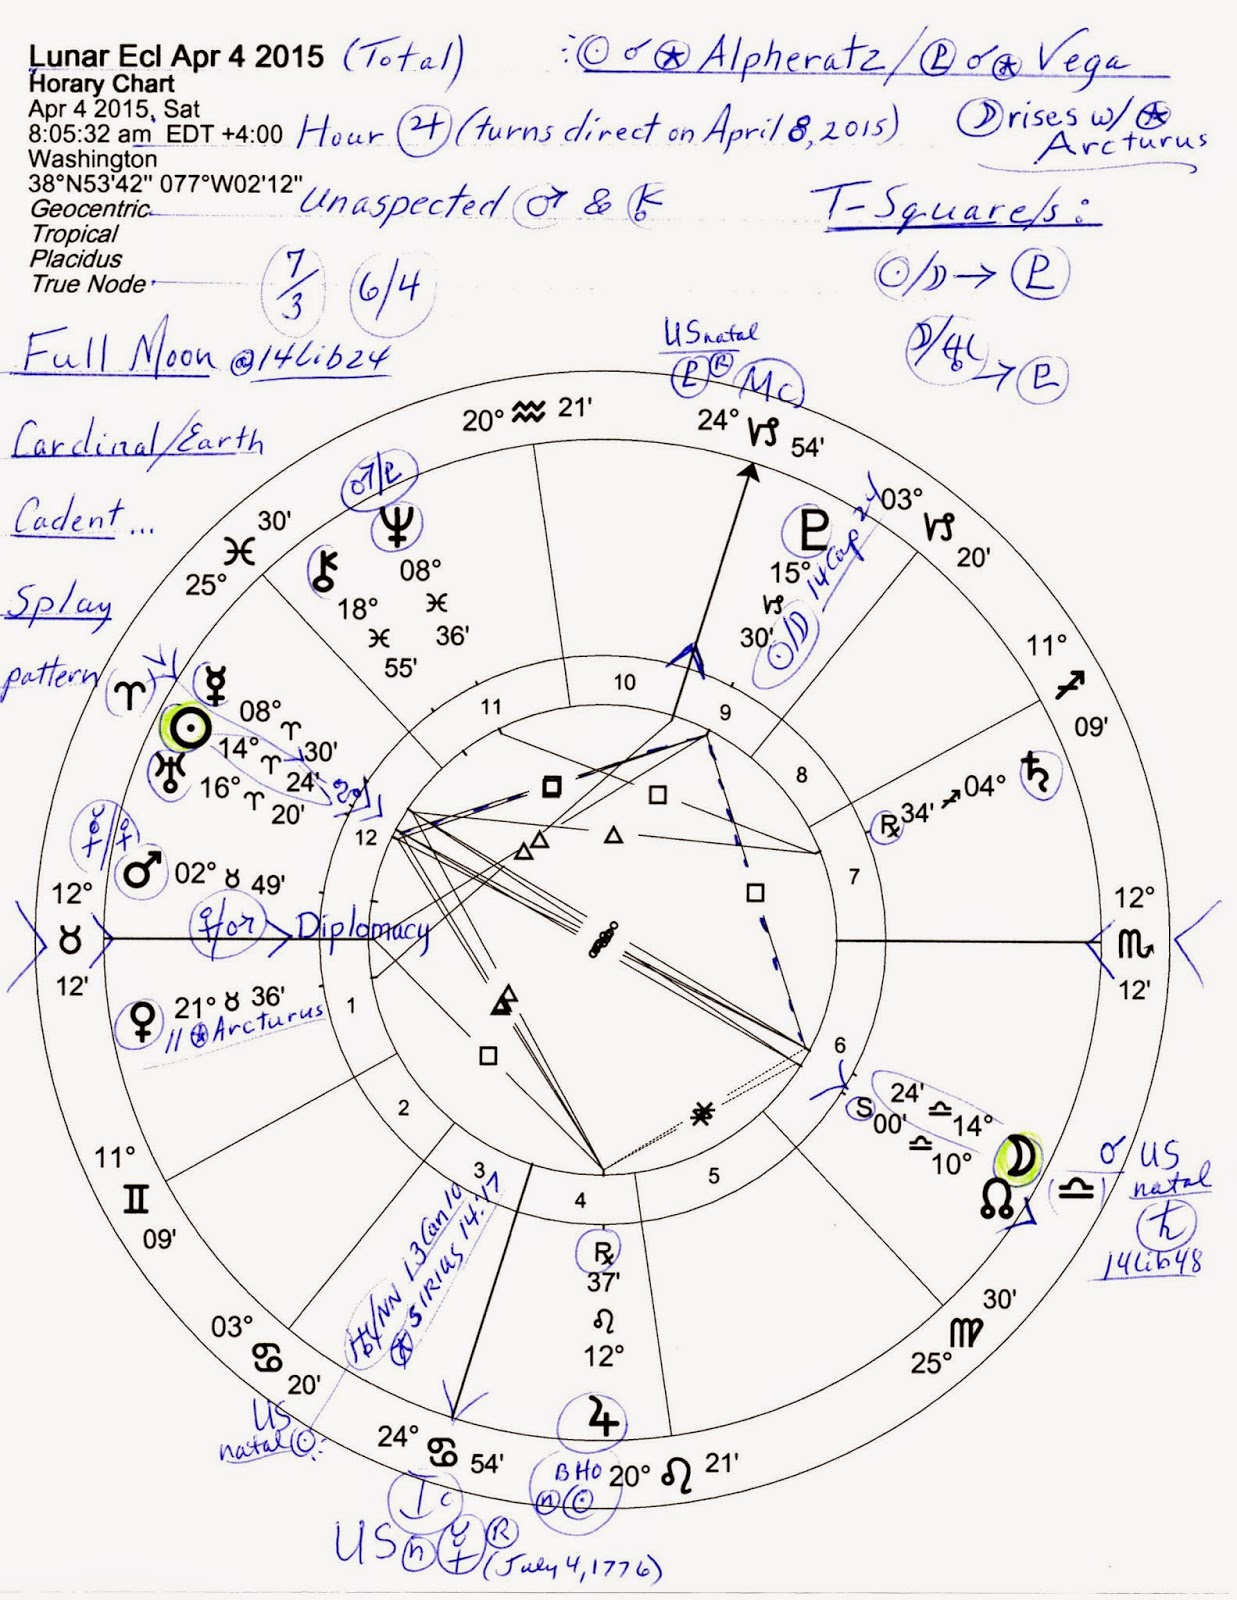 Stars over washington march 2015 as you see a horoscope for the april 4 2015 total lunar eclipse 14lib24 has been set for washington dc the capital and representative for the united nvjuhfo Images